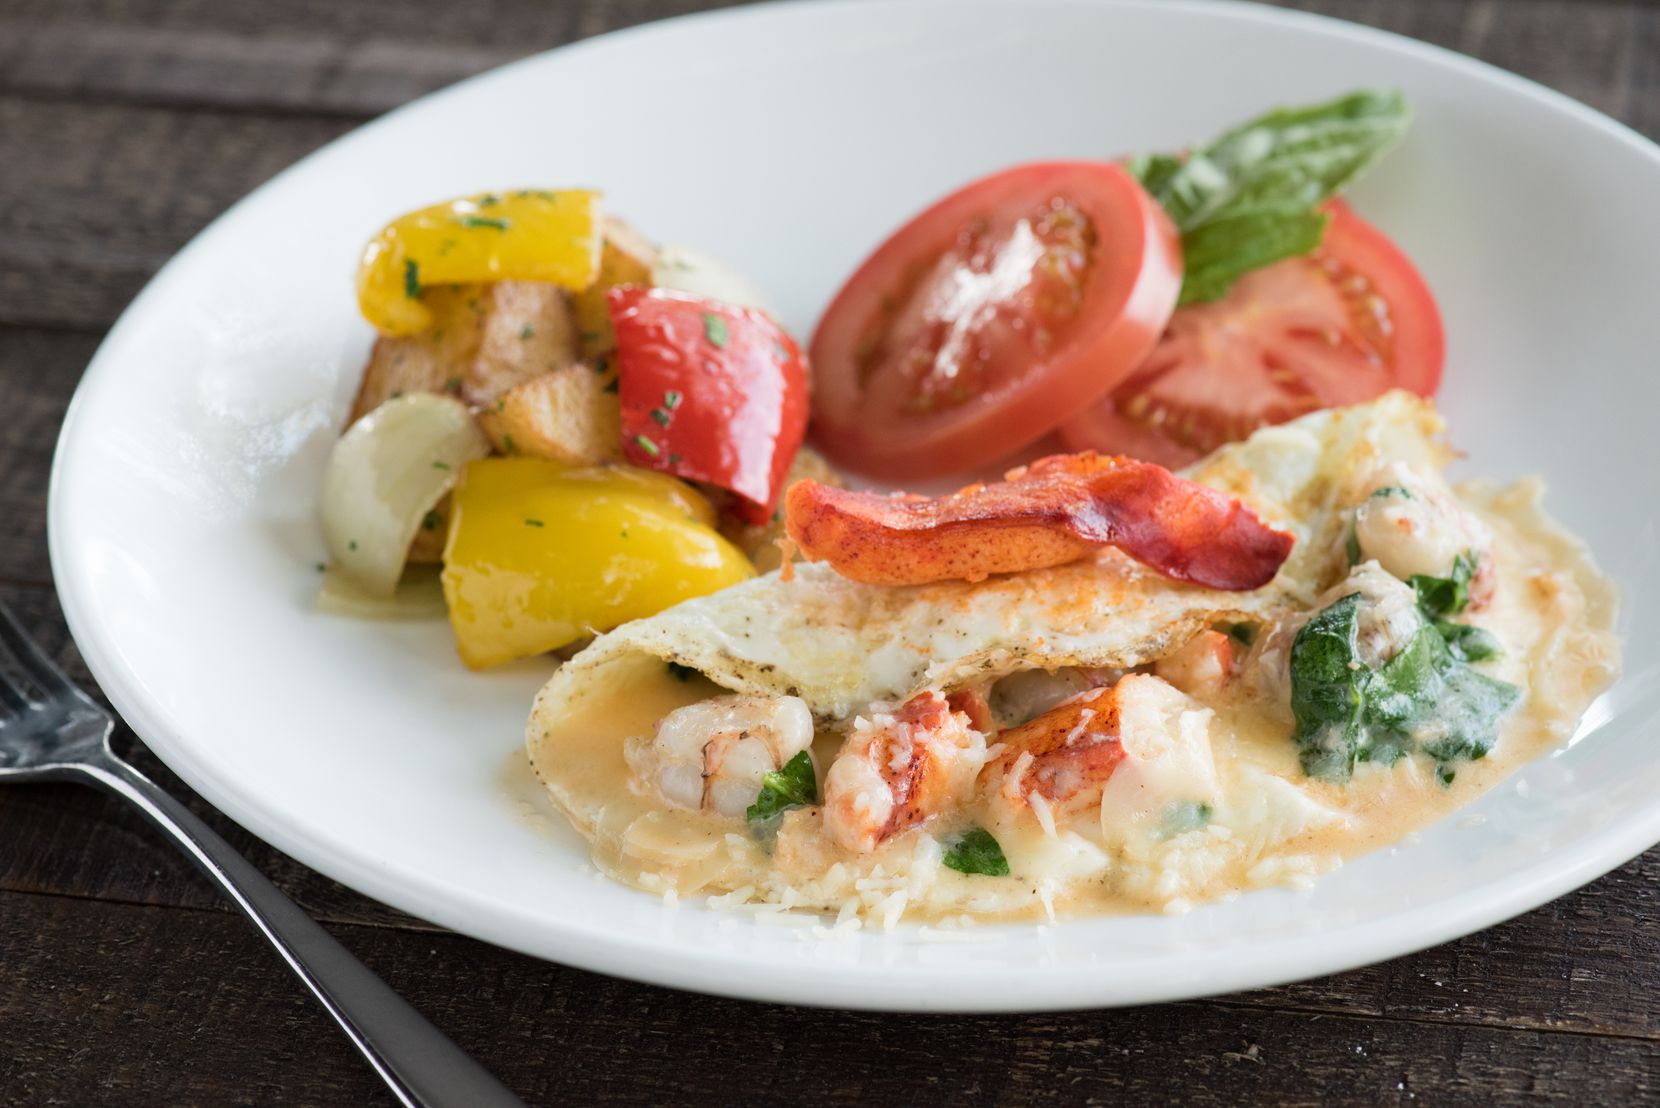 Princi Italia offers the Princi Omelette di Mare as part of its Father's Day brunch menu.